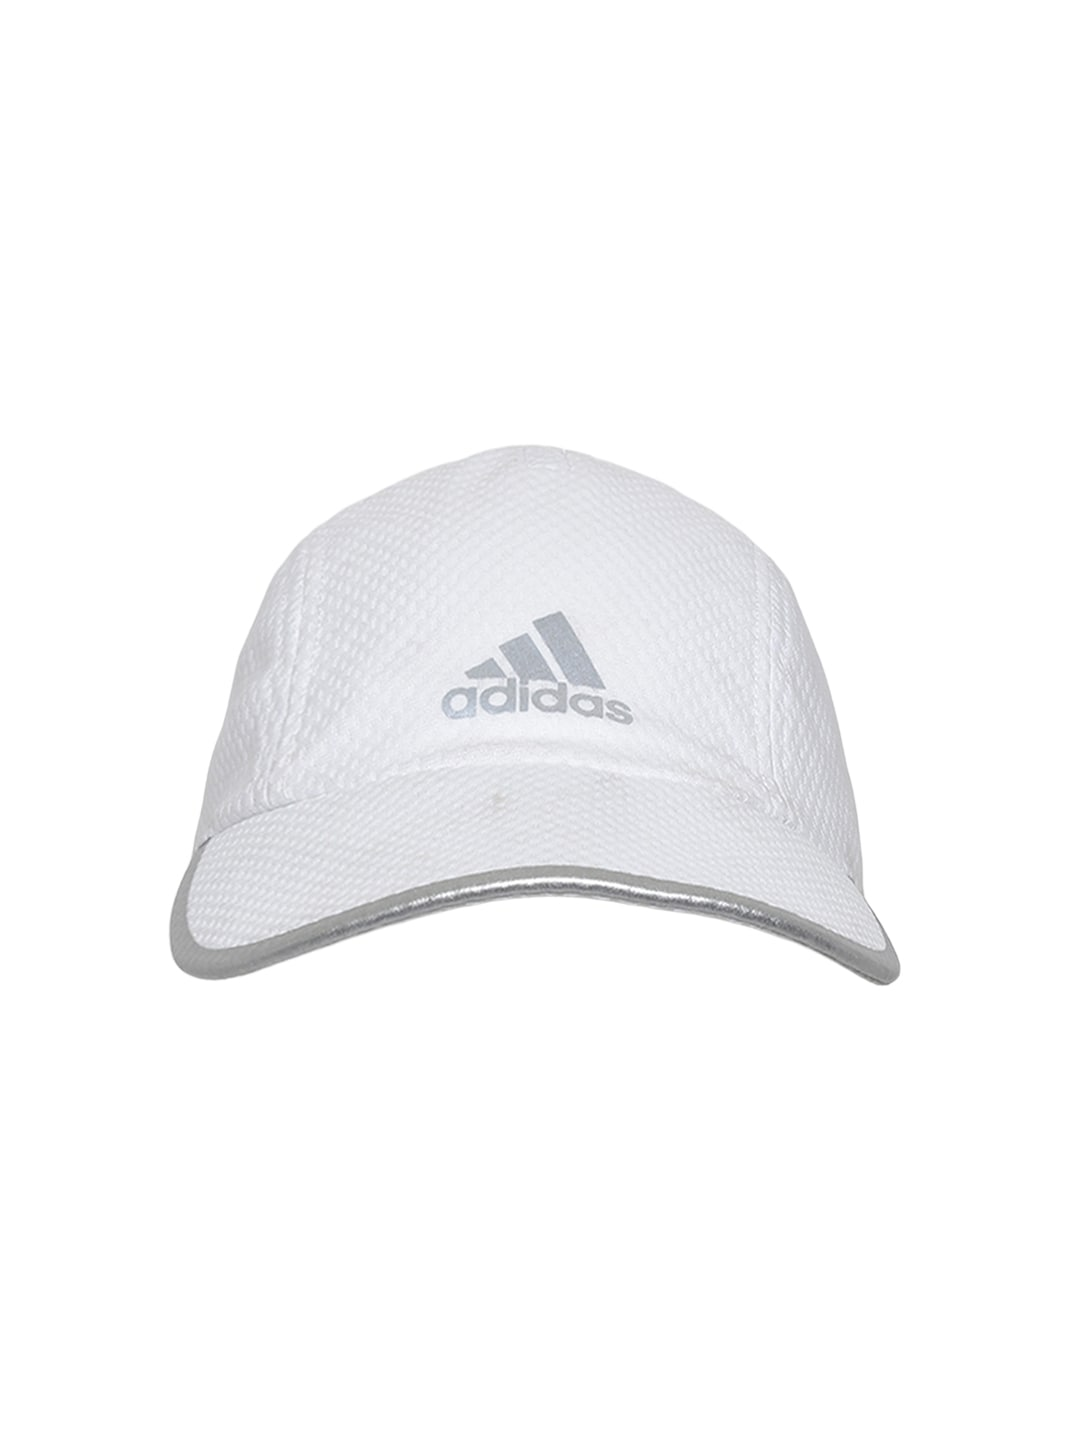 fc5ec5dd Adidas She - Buy Adidas She online in India